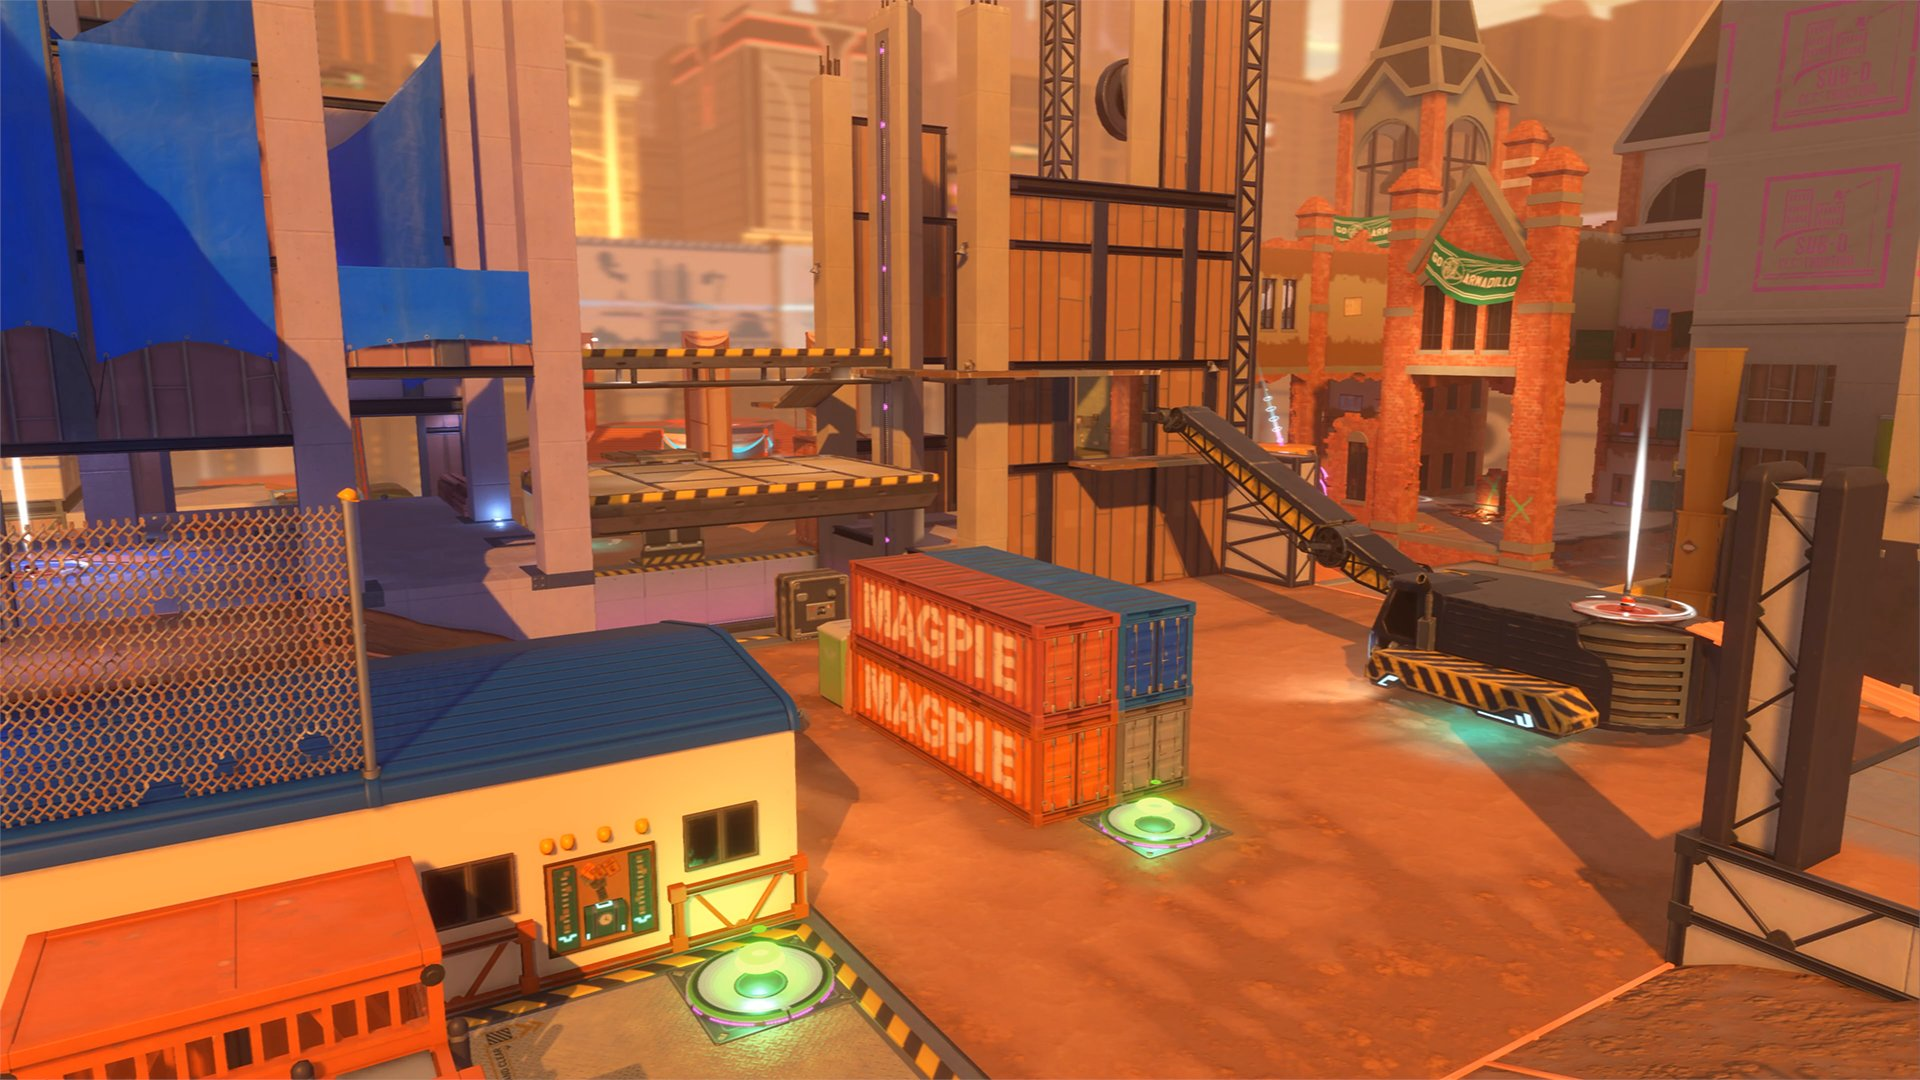 knockout city video game map wallpaper 74533